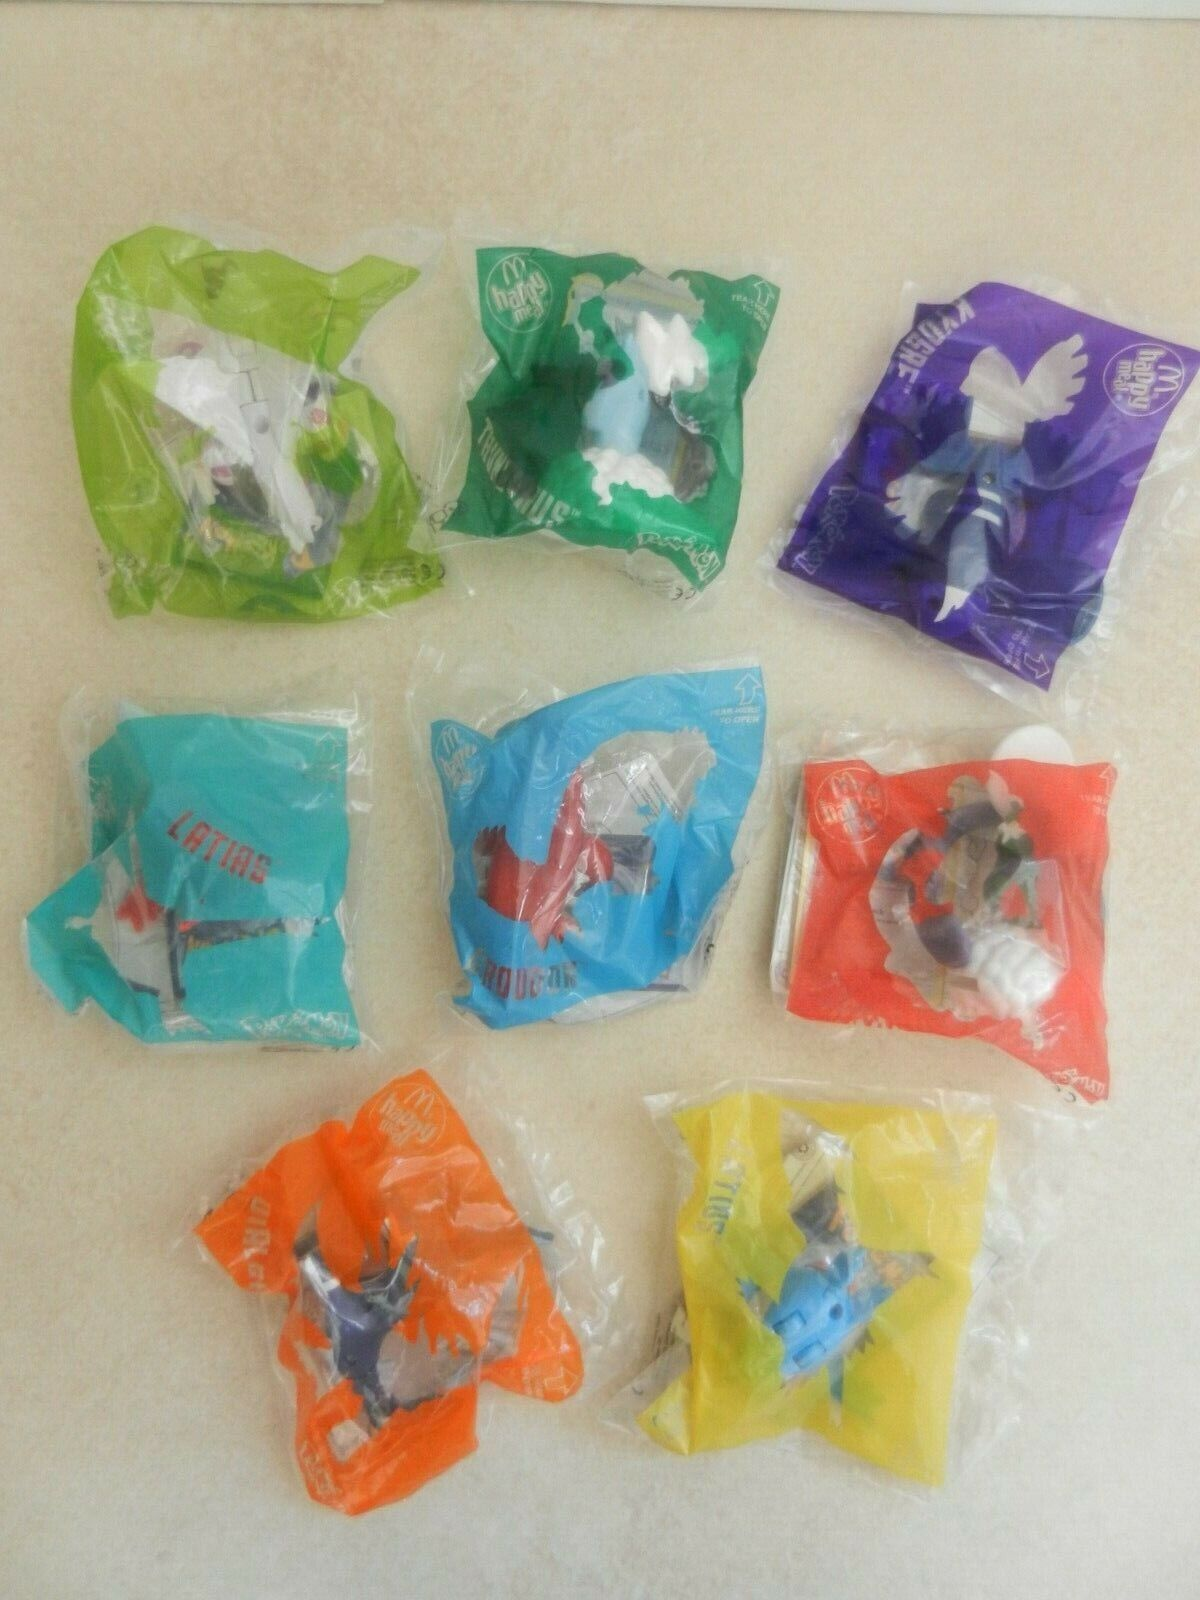 BNIP McDonald's Happy Meal Pokemon Full Set of 8 Toys New Sealed Bags 2019 Set